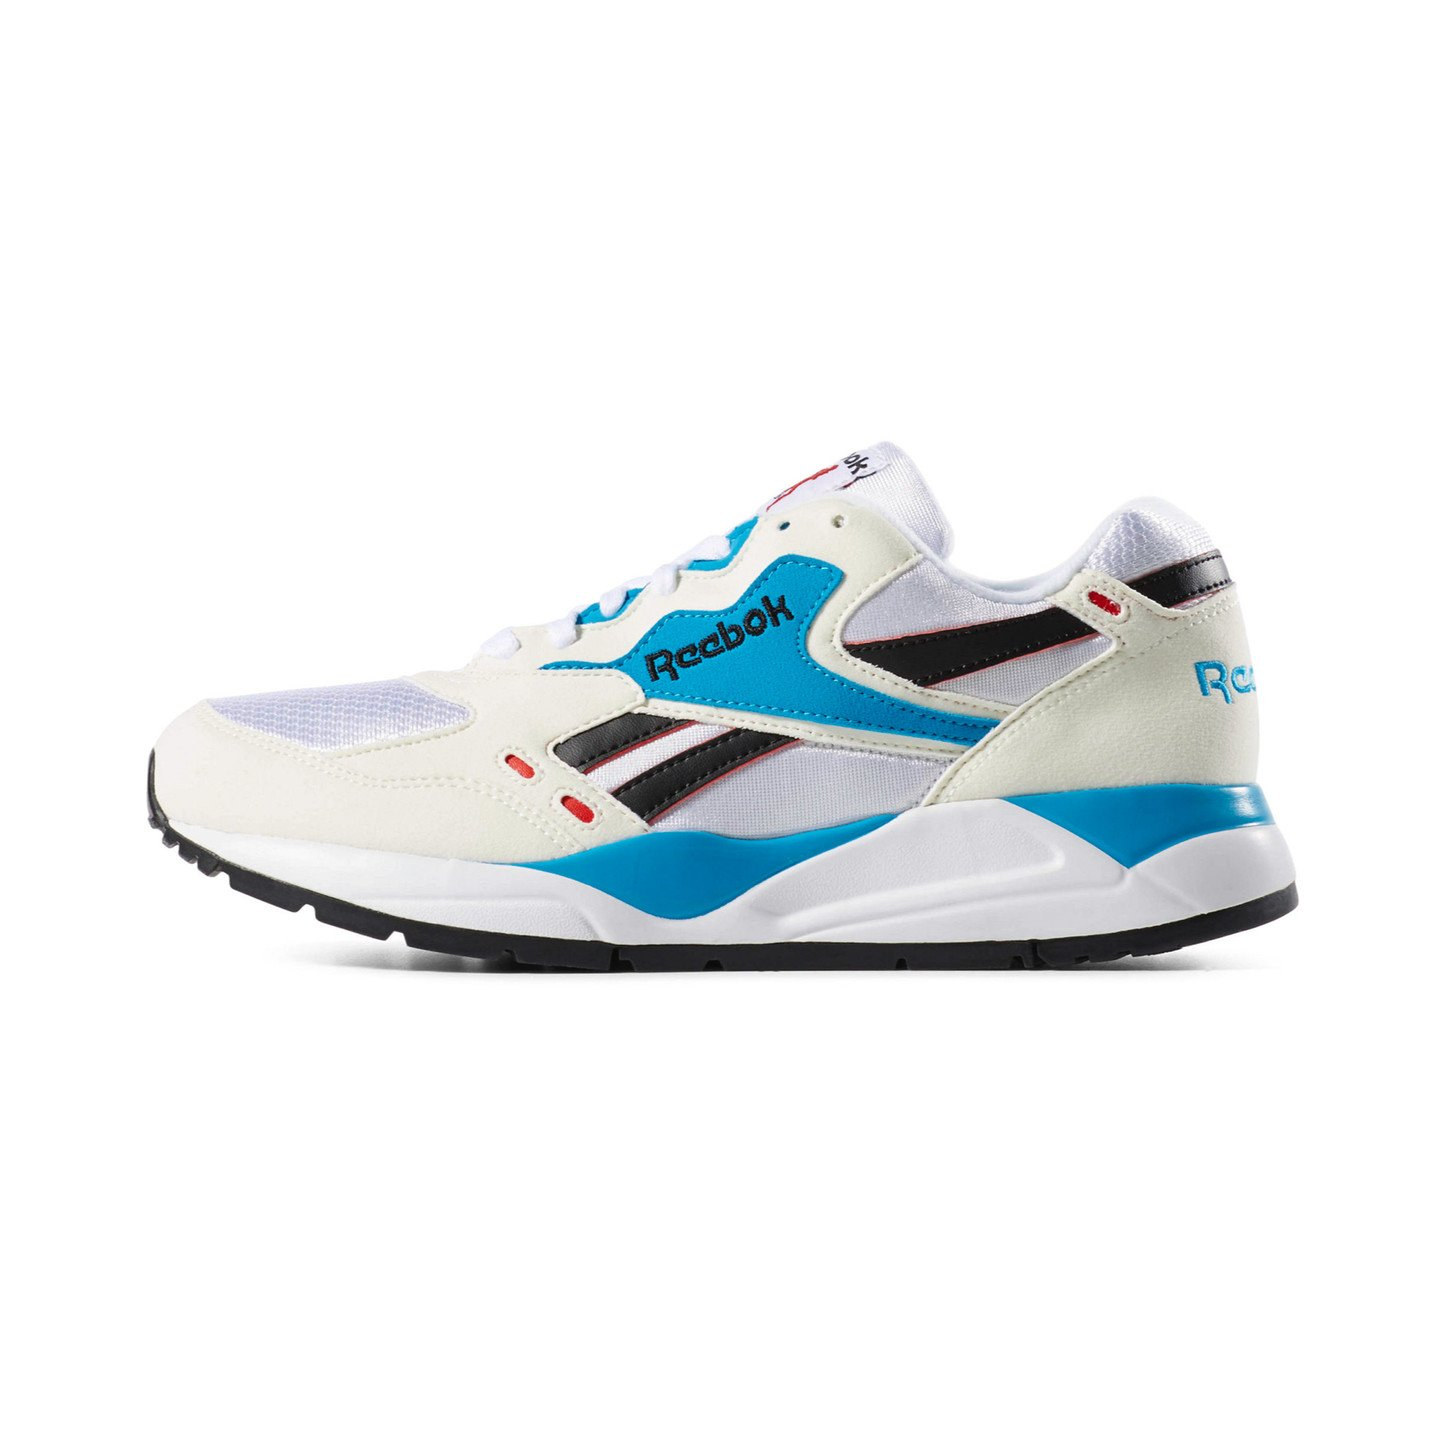 Reebok Bolton Chalk / White / Red Rush / California Blue / Black M49098